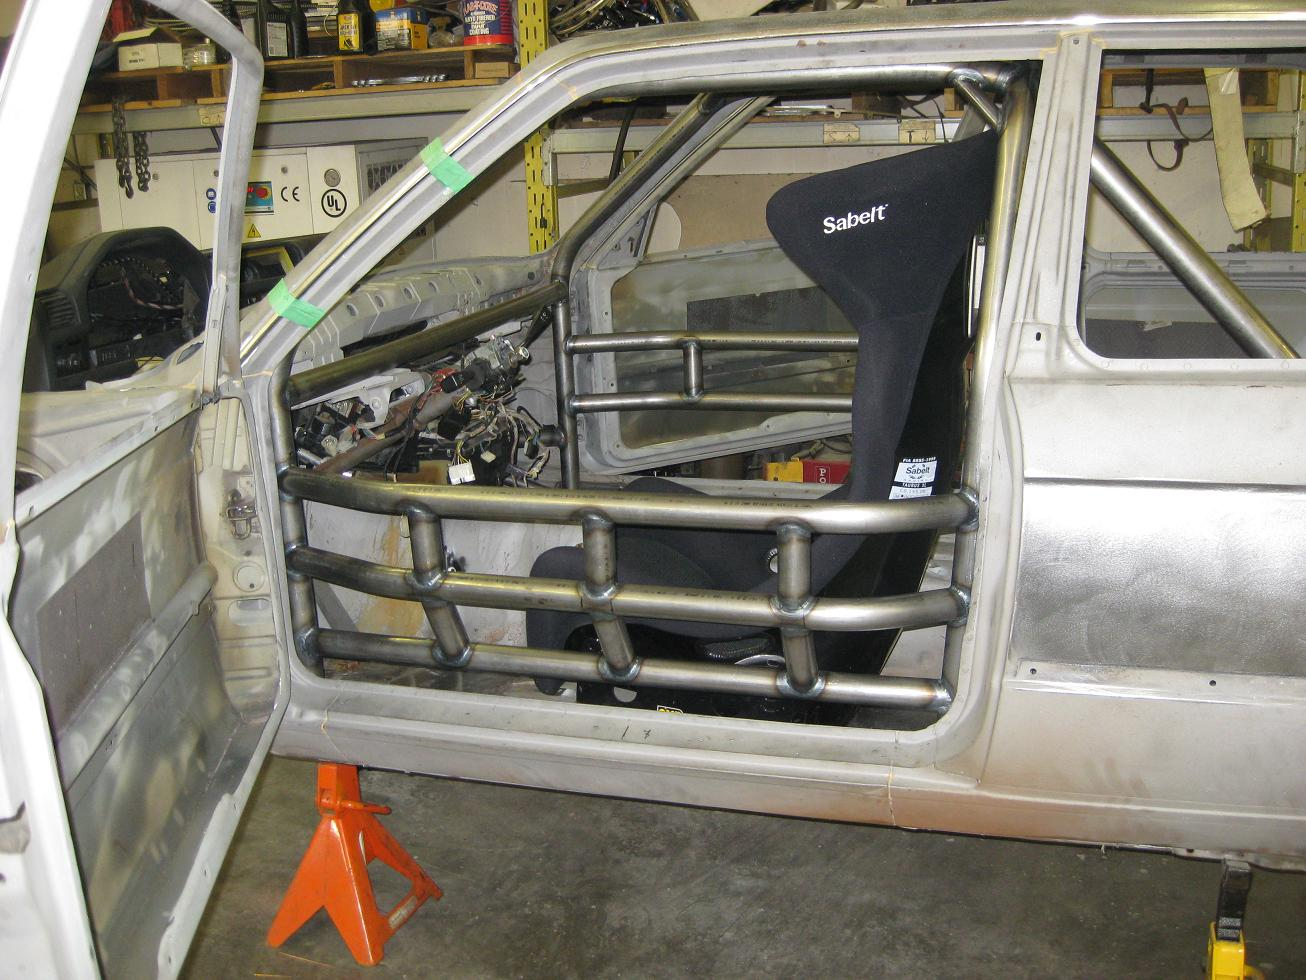 1985 Bmw 325 Roll Cage Icscc Pro 3 Class 171 Progas Engineering